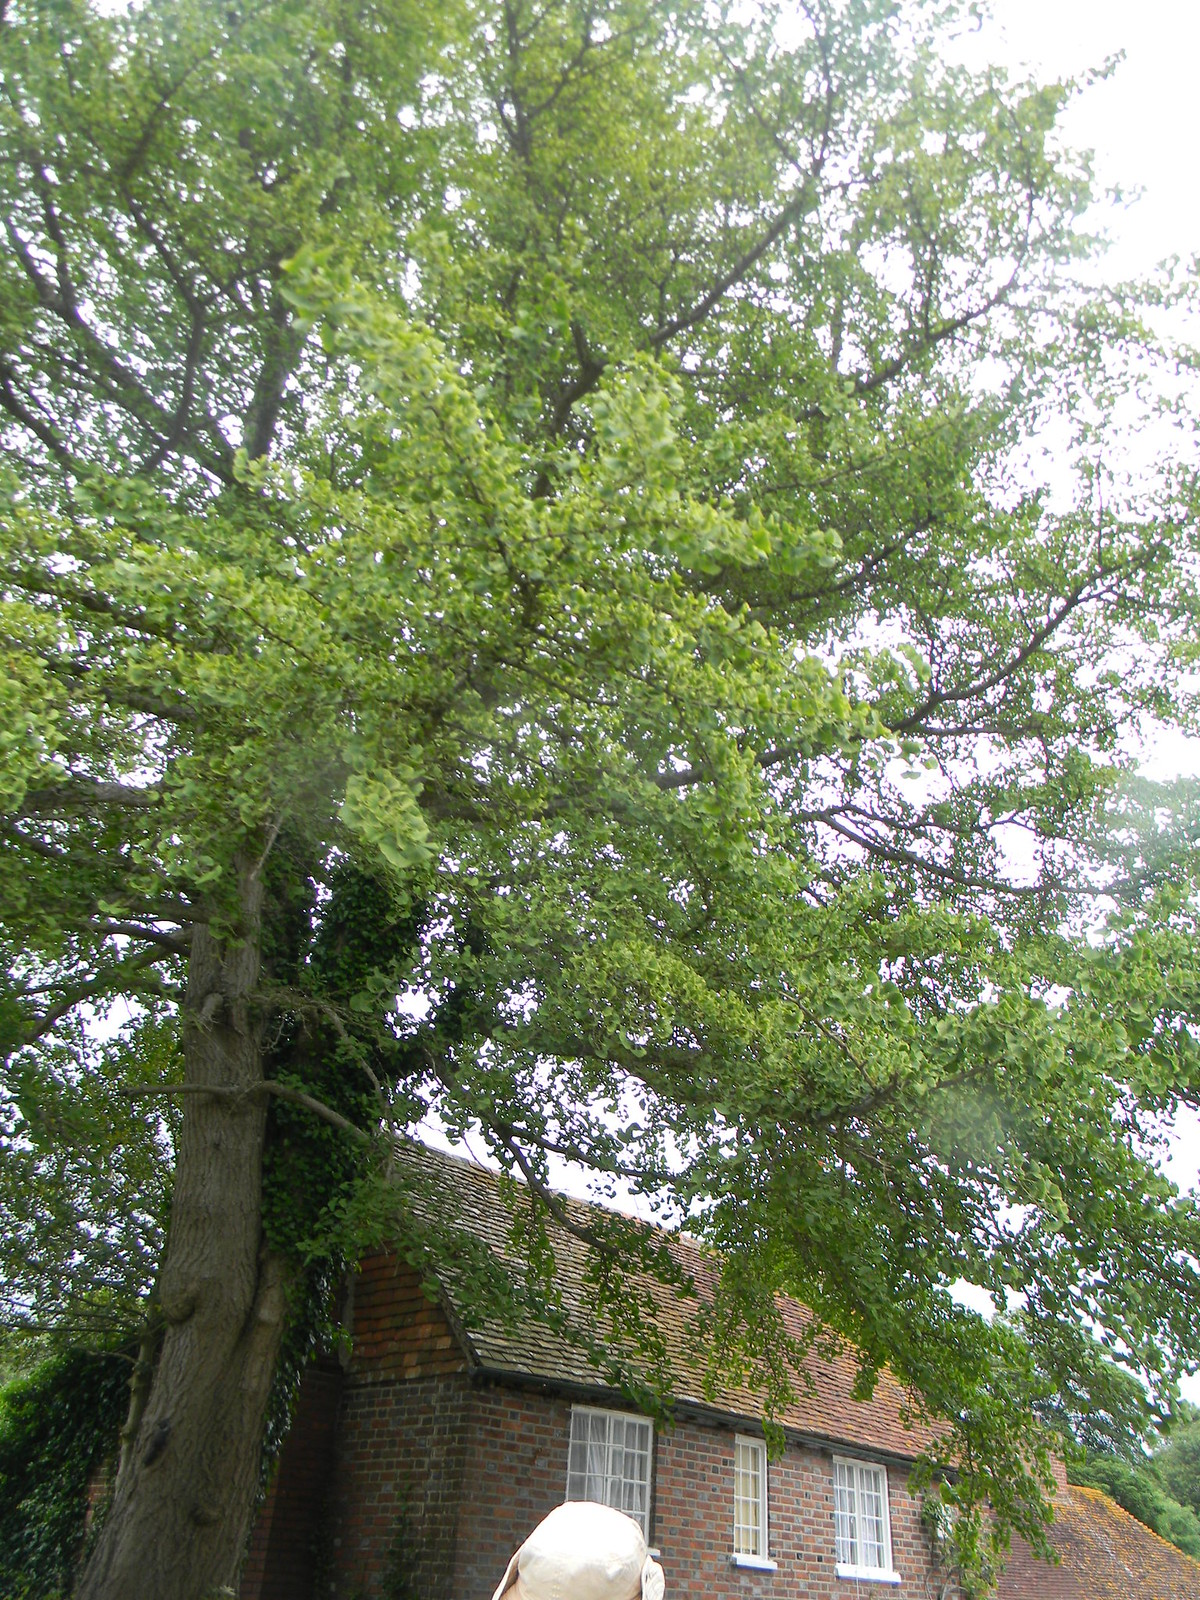 Large gingko, West Firle Lewes to Berwick